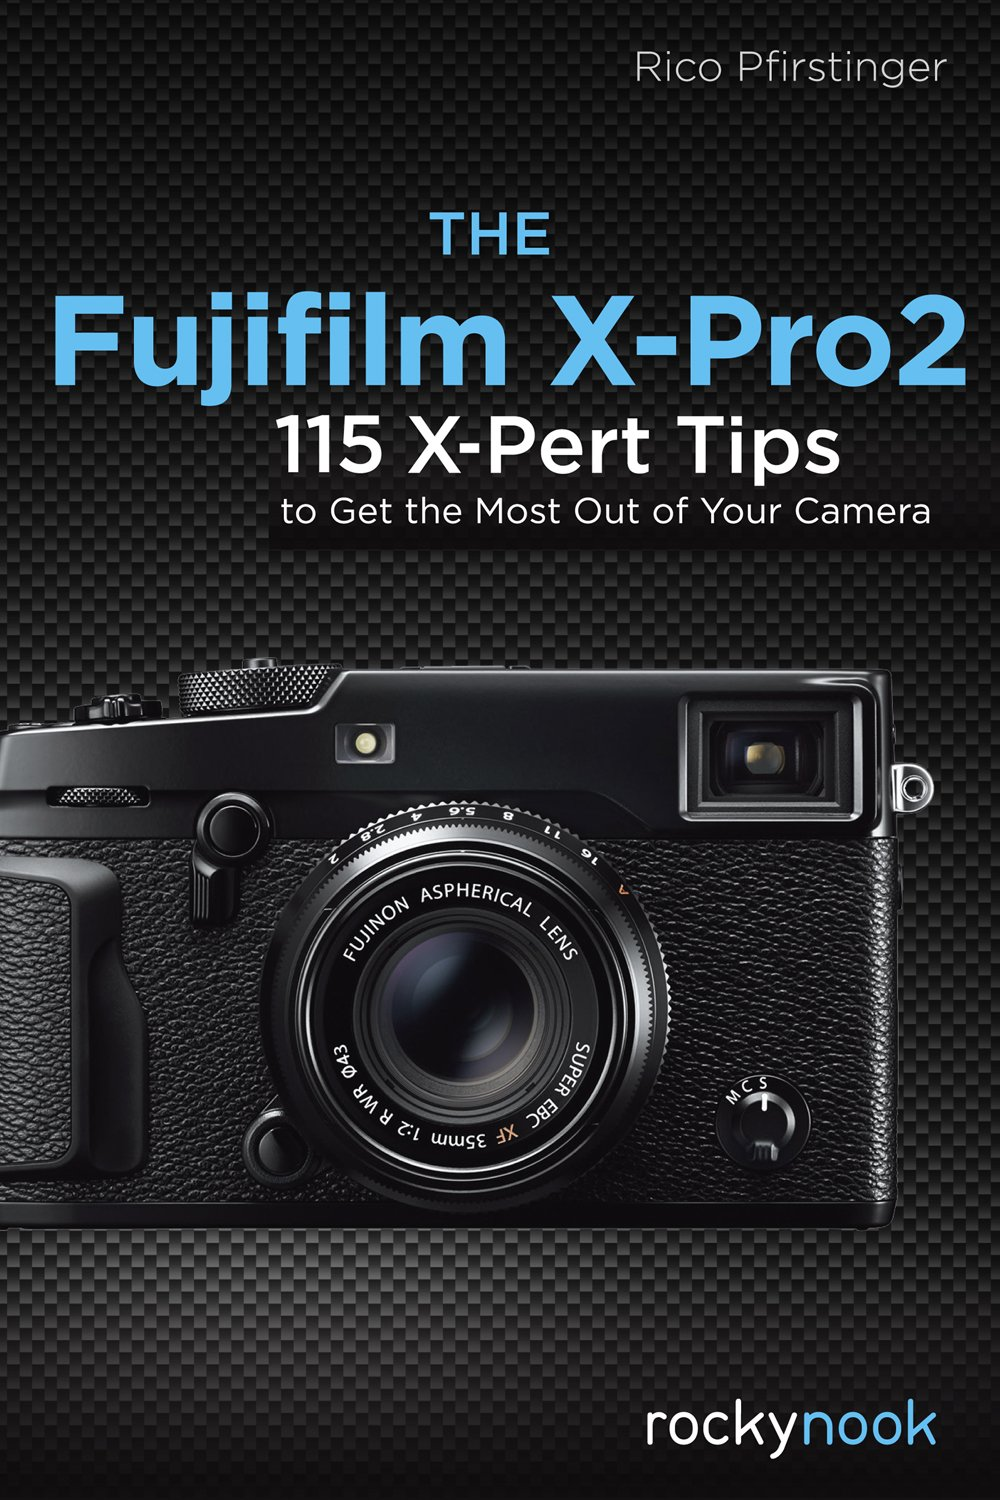 The fujifilm x pro2 115 x pert tips to get the most out of your the fujifilm x pro2 115 x pert tips to get the most out of your camera rico pfirstinger 9781681981505 amazon books fandeluxe Images